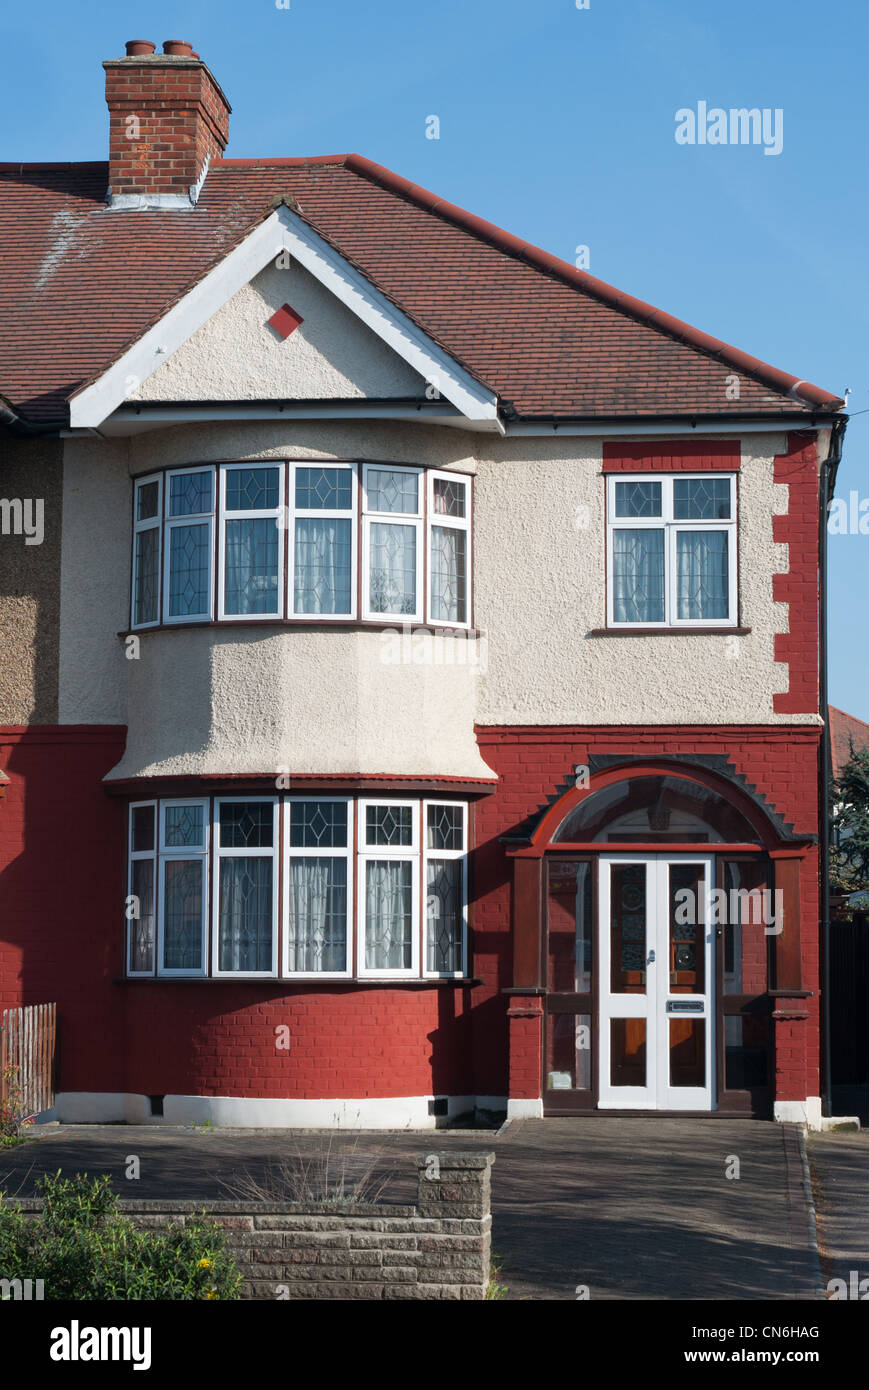 Semi detached house, in London borough of Enfield, UK - Stock Image